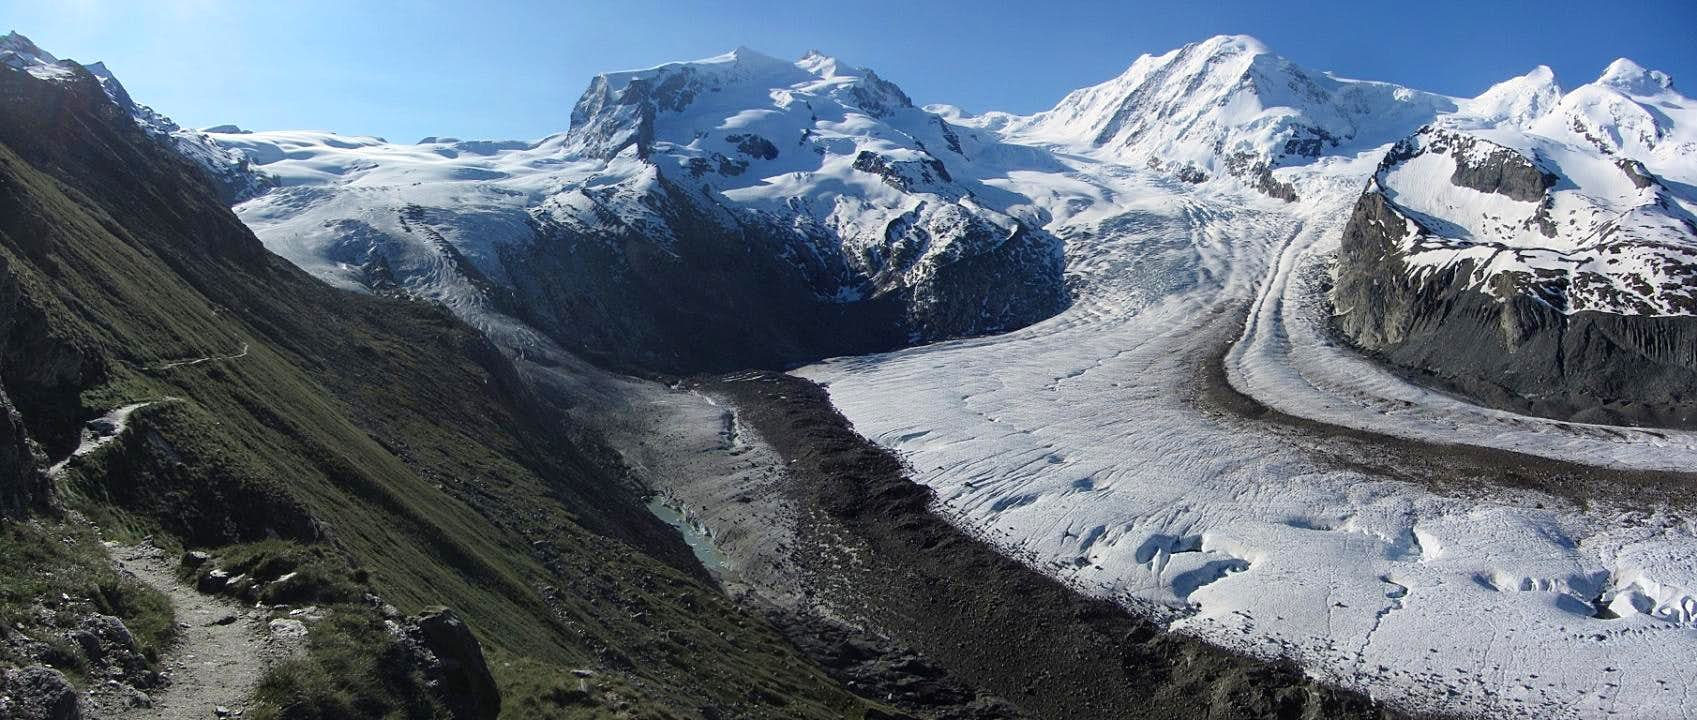 The Grenzgletscher meets the Gornergletscher